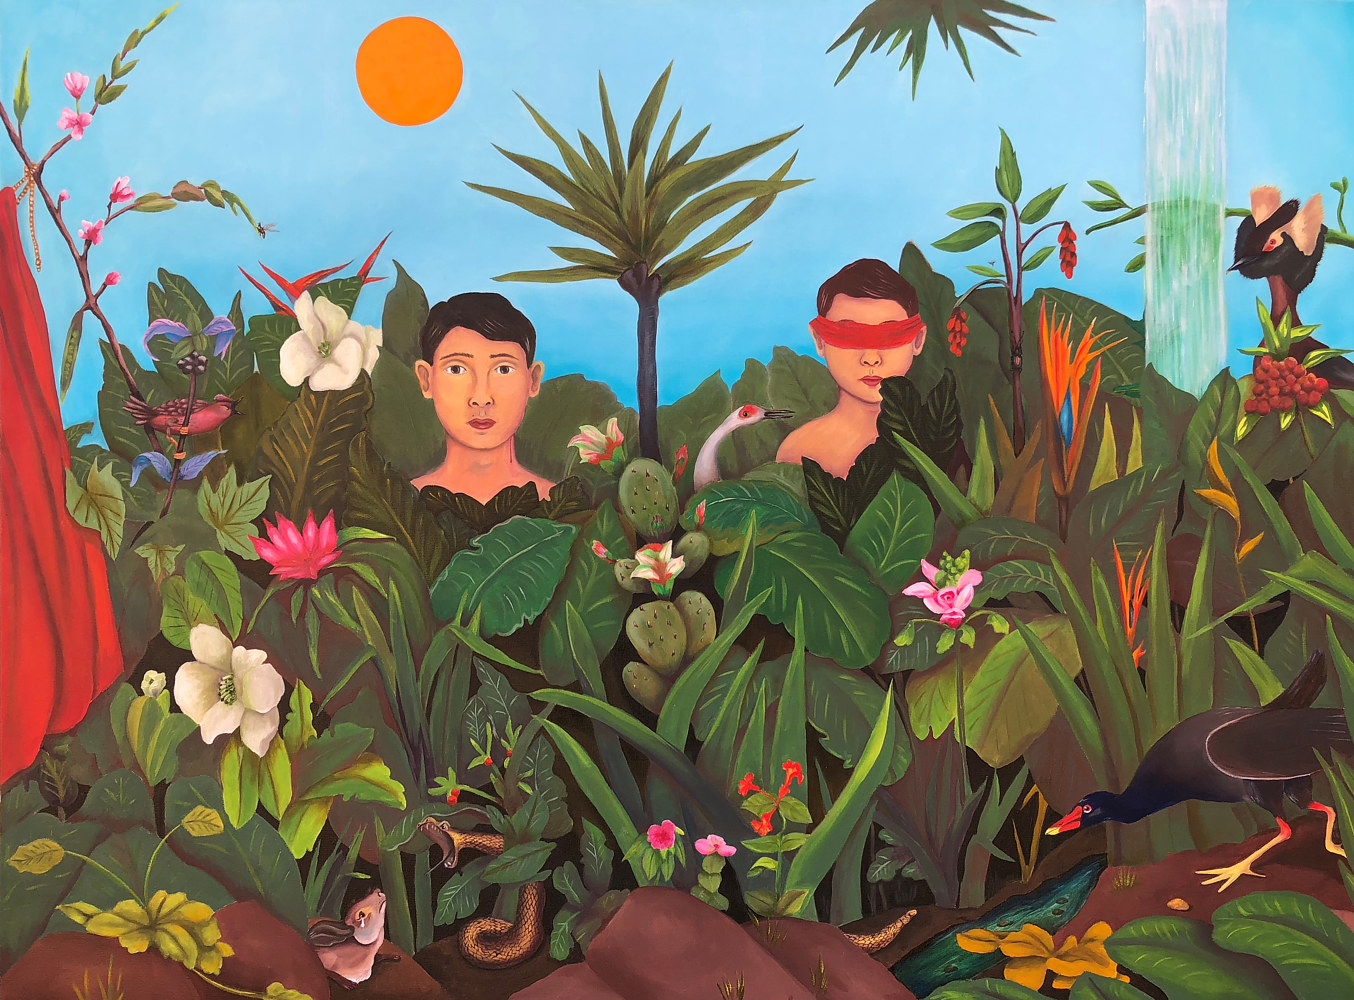 Oil painting Boys in the Garden by Armando Huerta